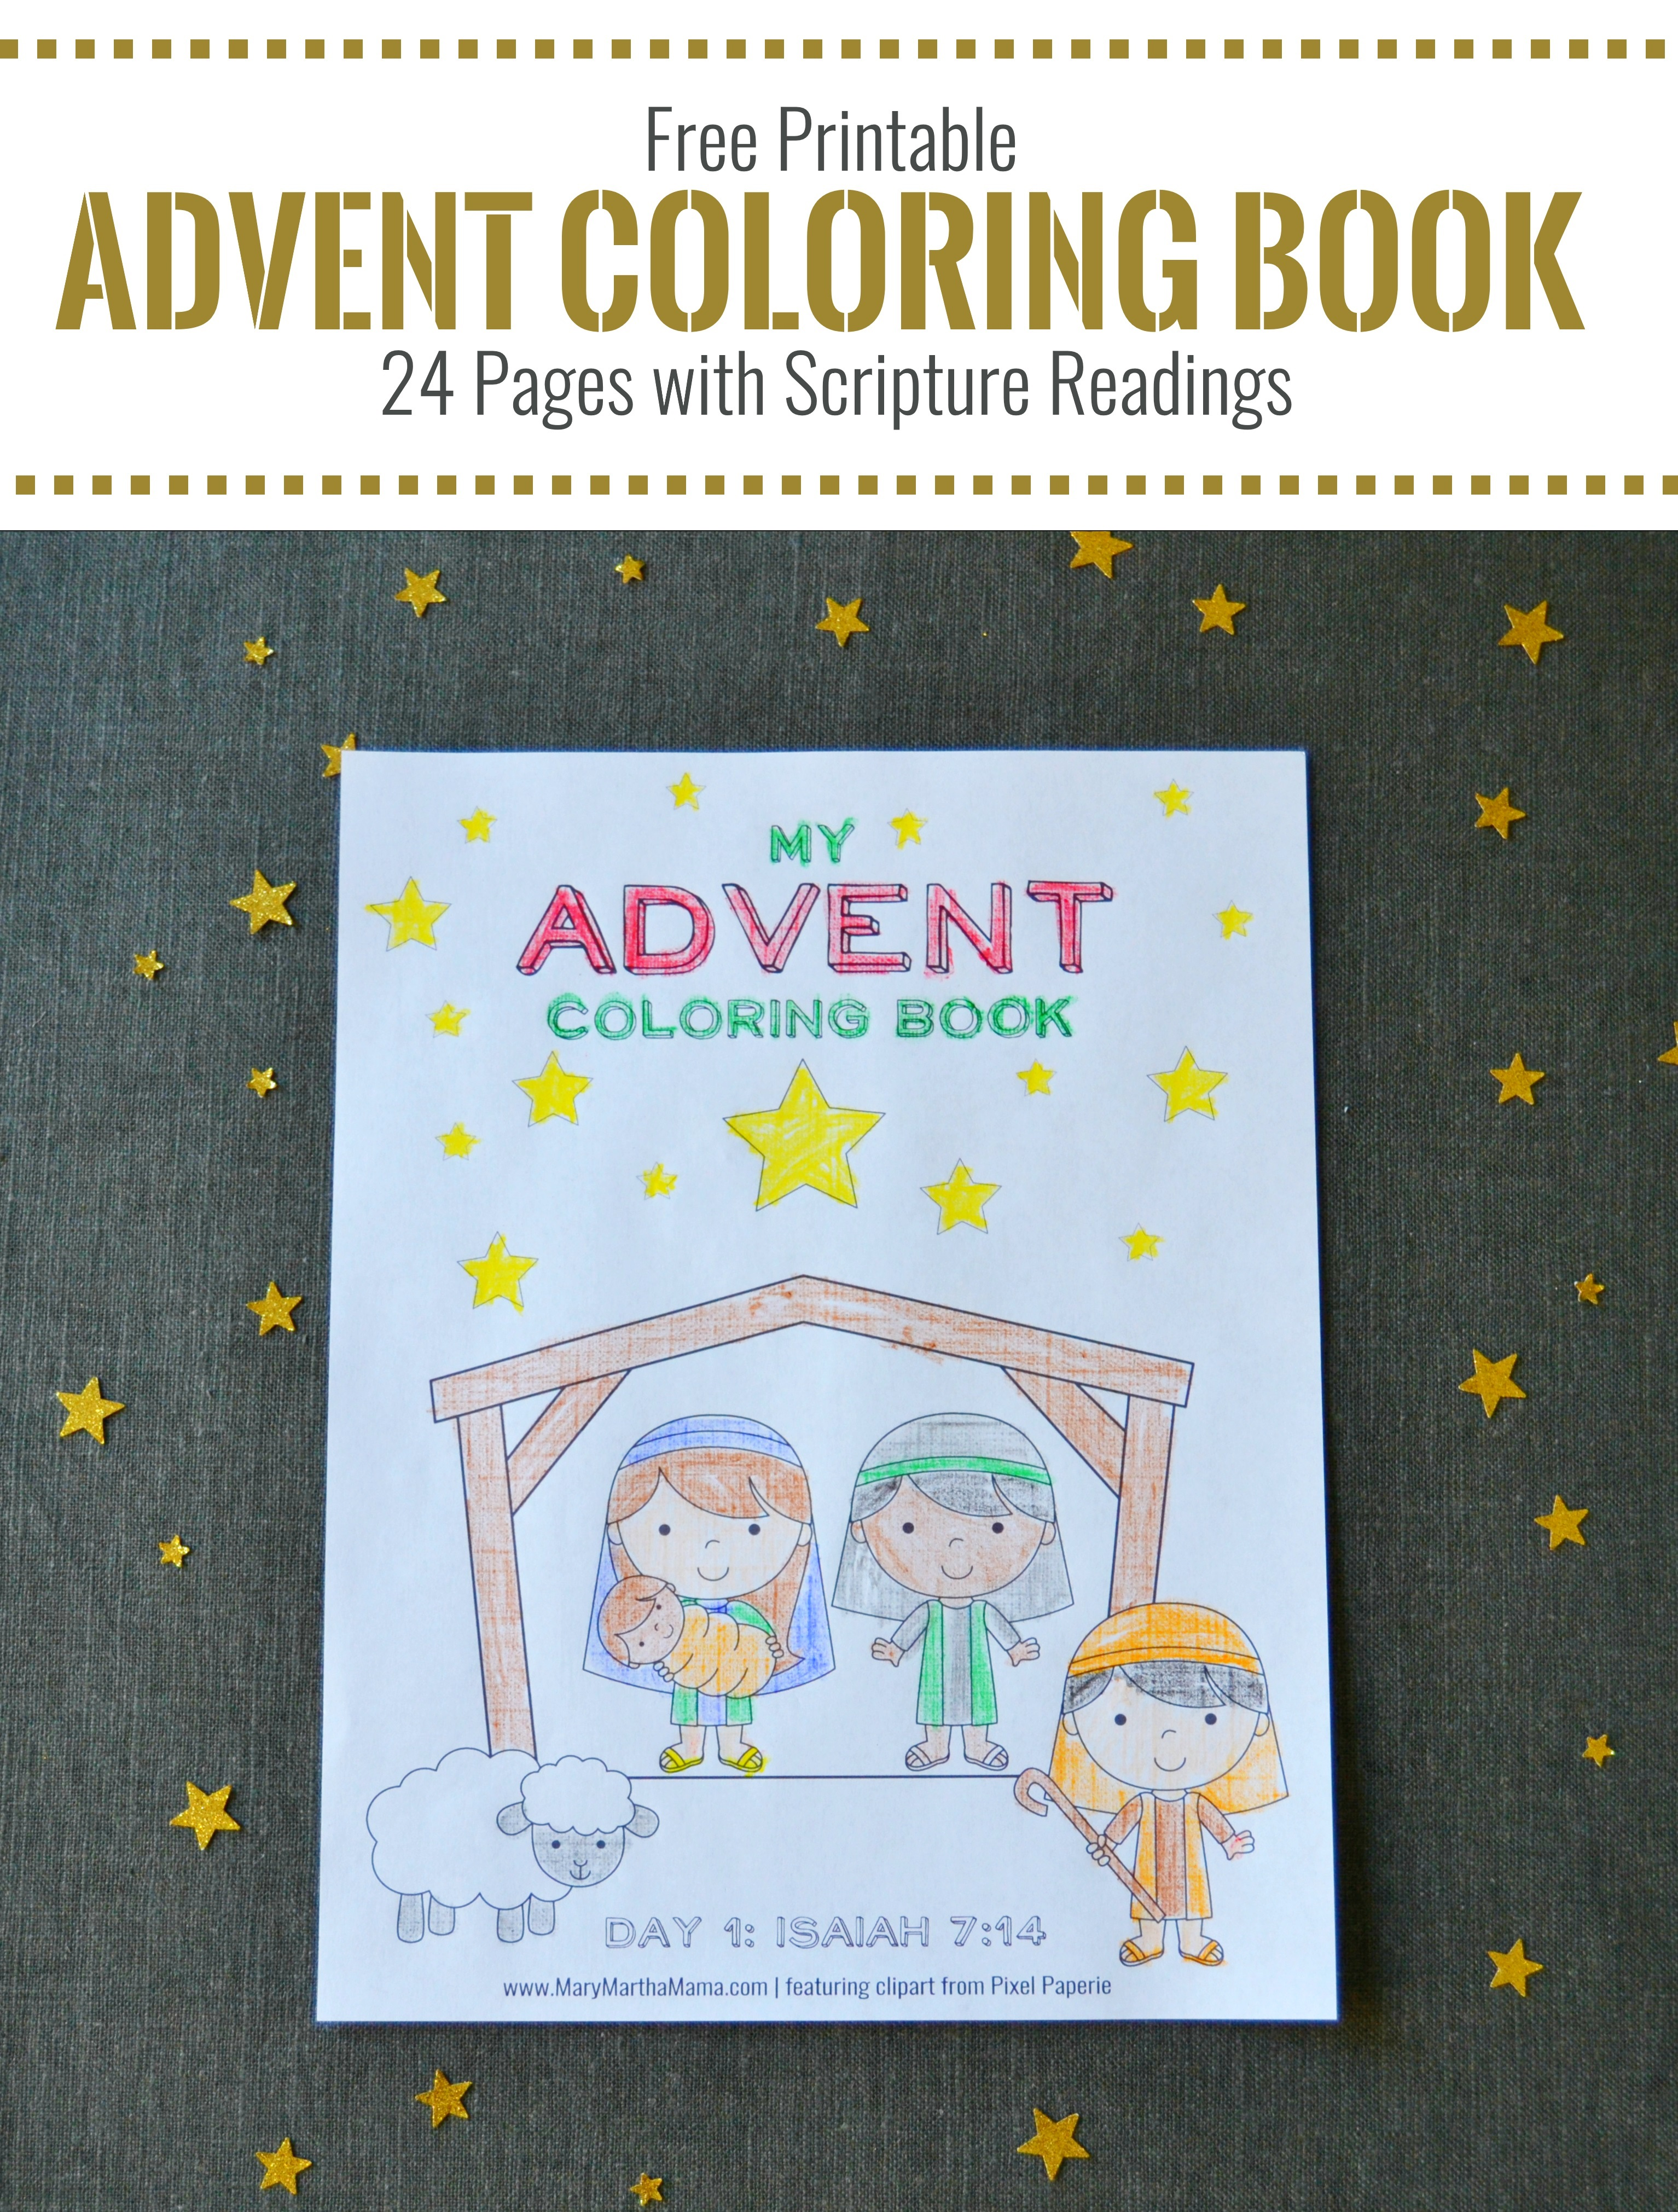 Free Printable Advent Coloring Book for Kids - Money ...